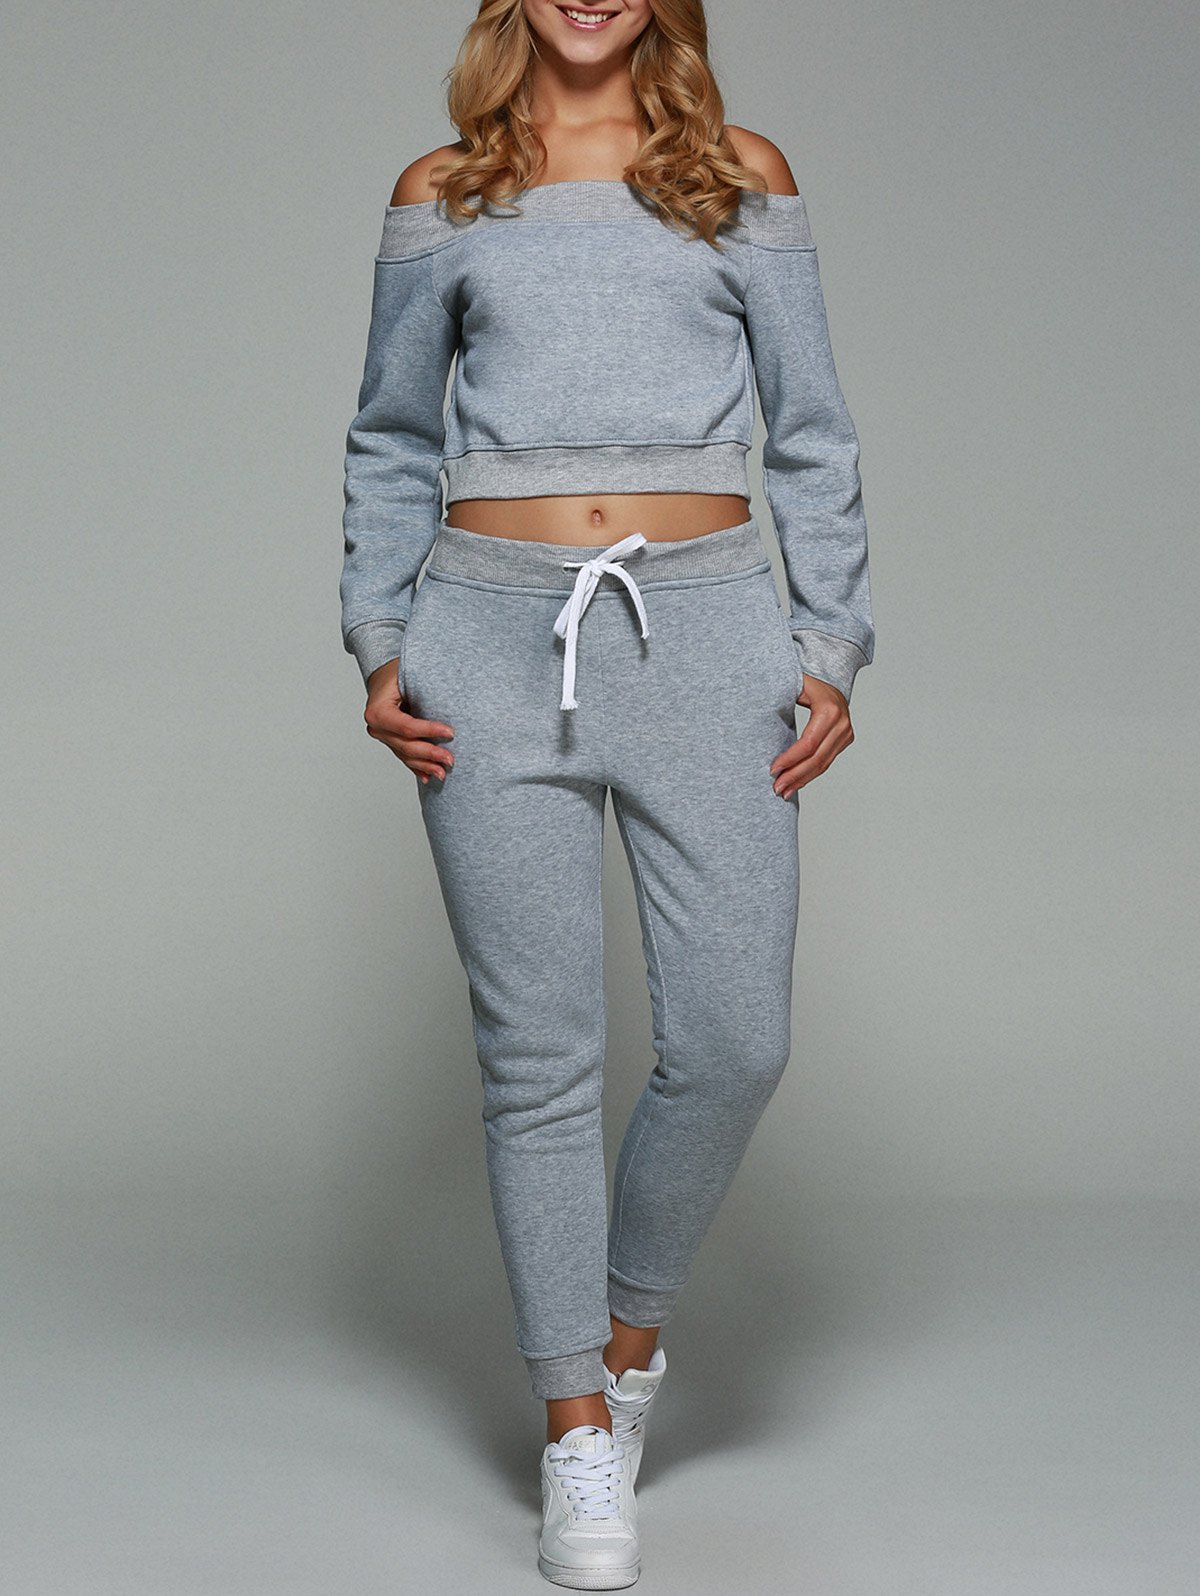 Off Shoulder Cropped Sweatshirt With Pants